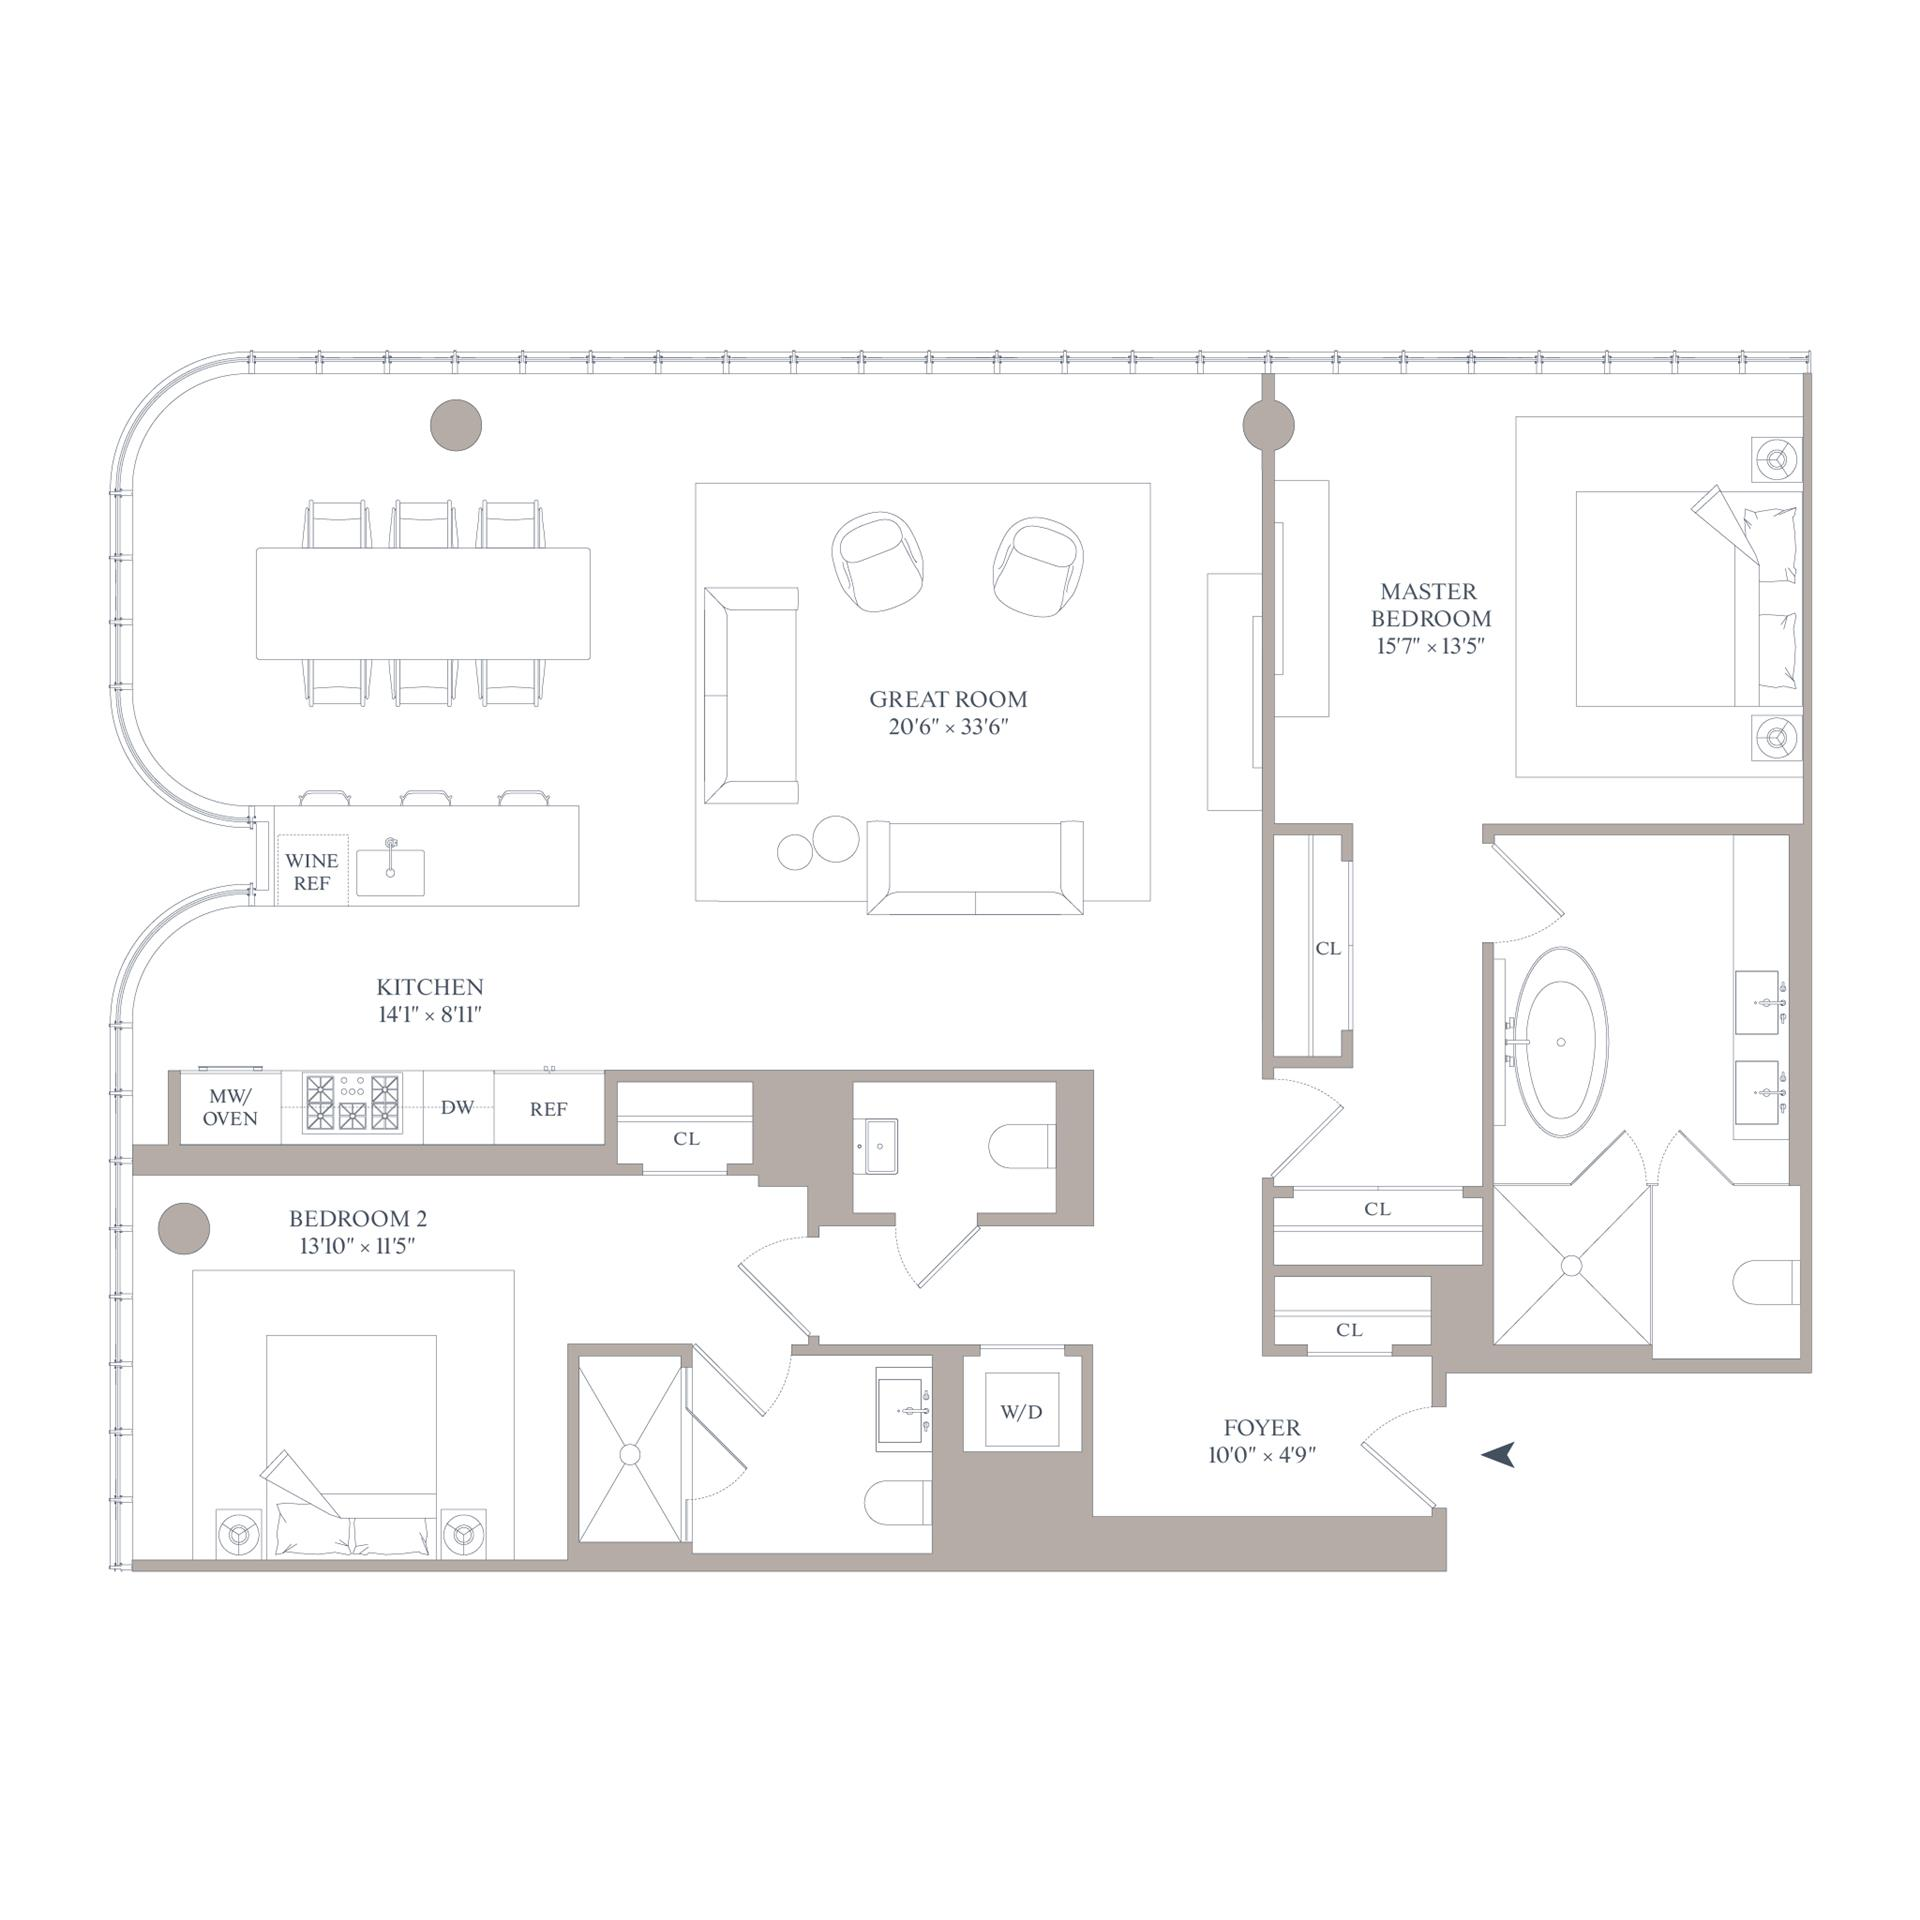 Floor plan of 565 Broome St, N9C - SoHo - Nolita, New York